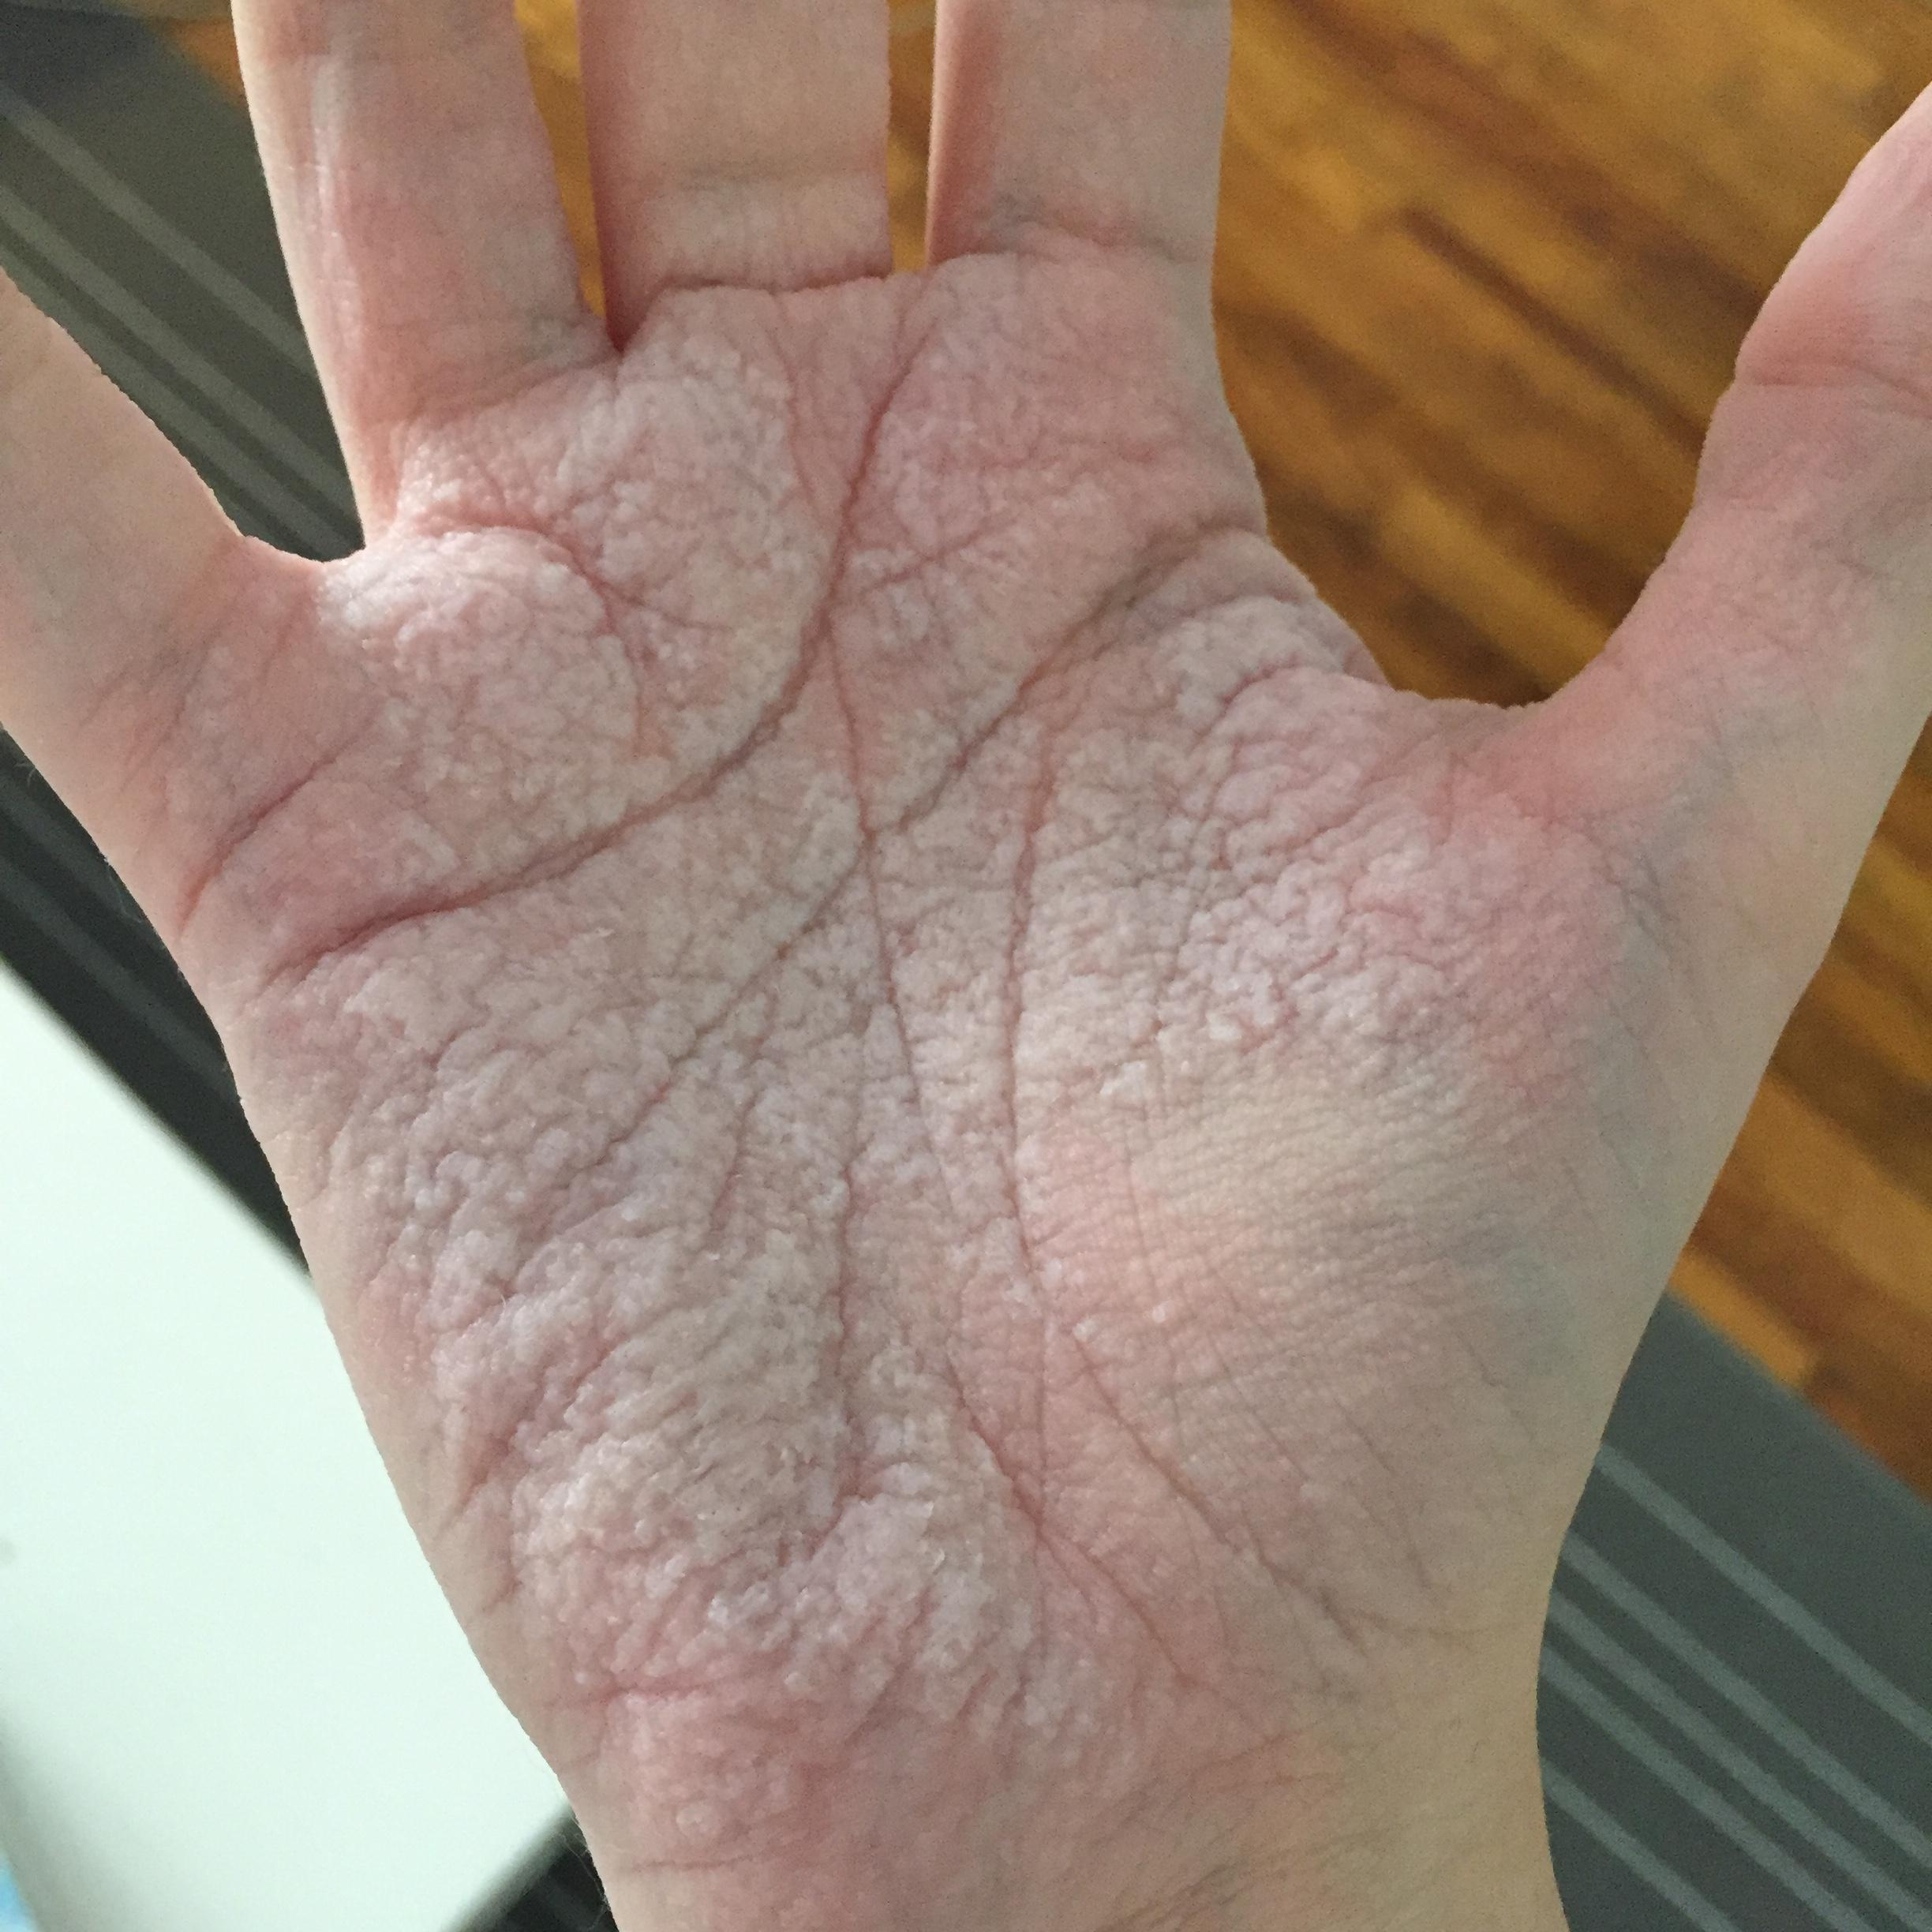 22 - This man has a water sensitivity. This is his hand after a 15-minute shower.